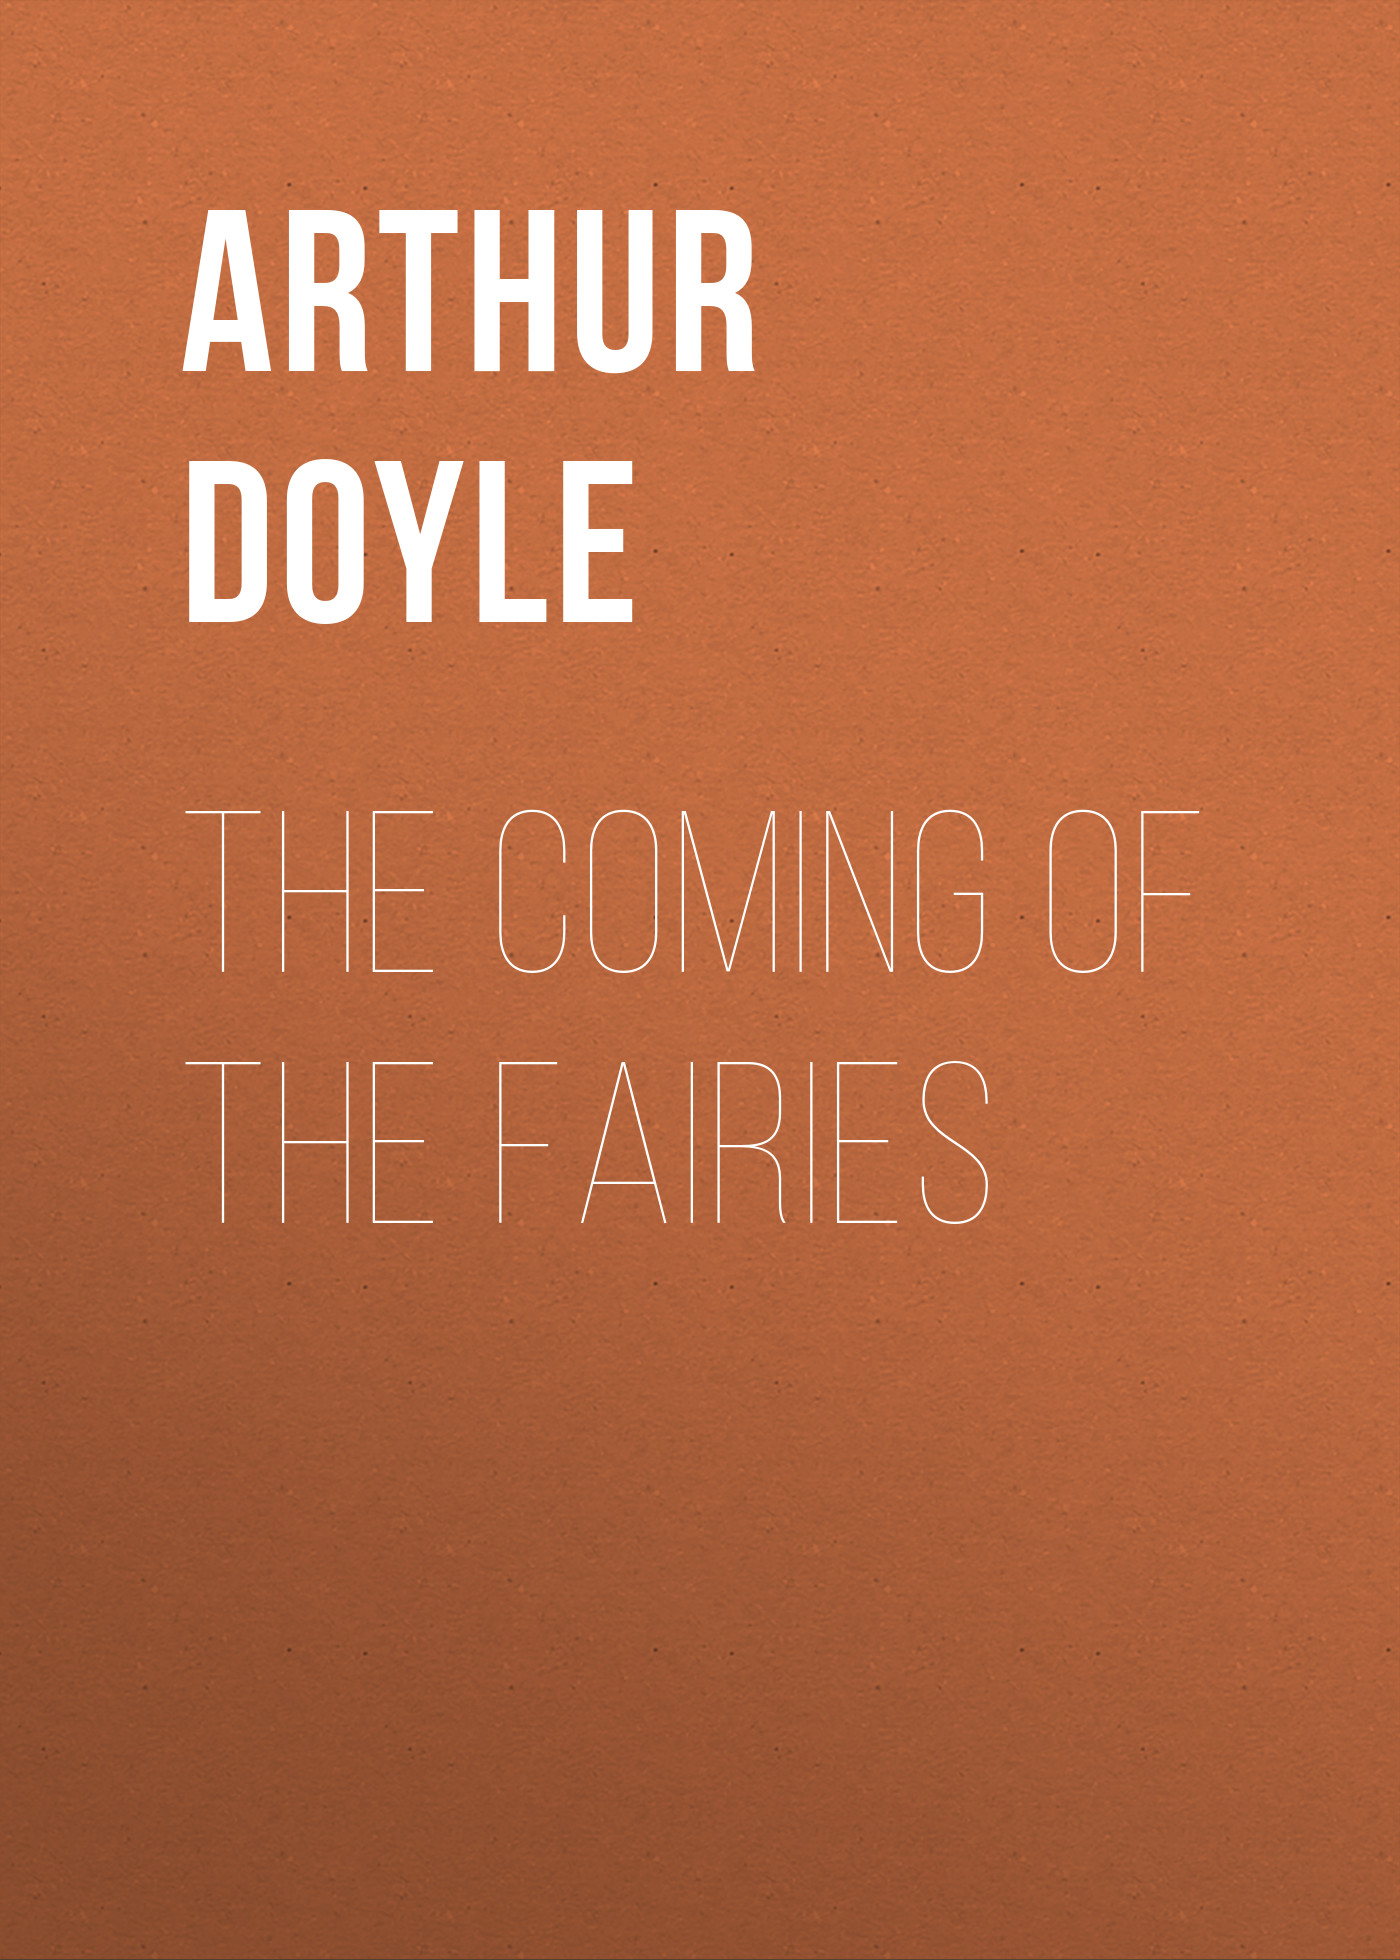 цена Doyle Arthur Conan The Coming of the Fairies онлайн в 2017 году